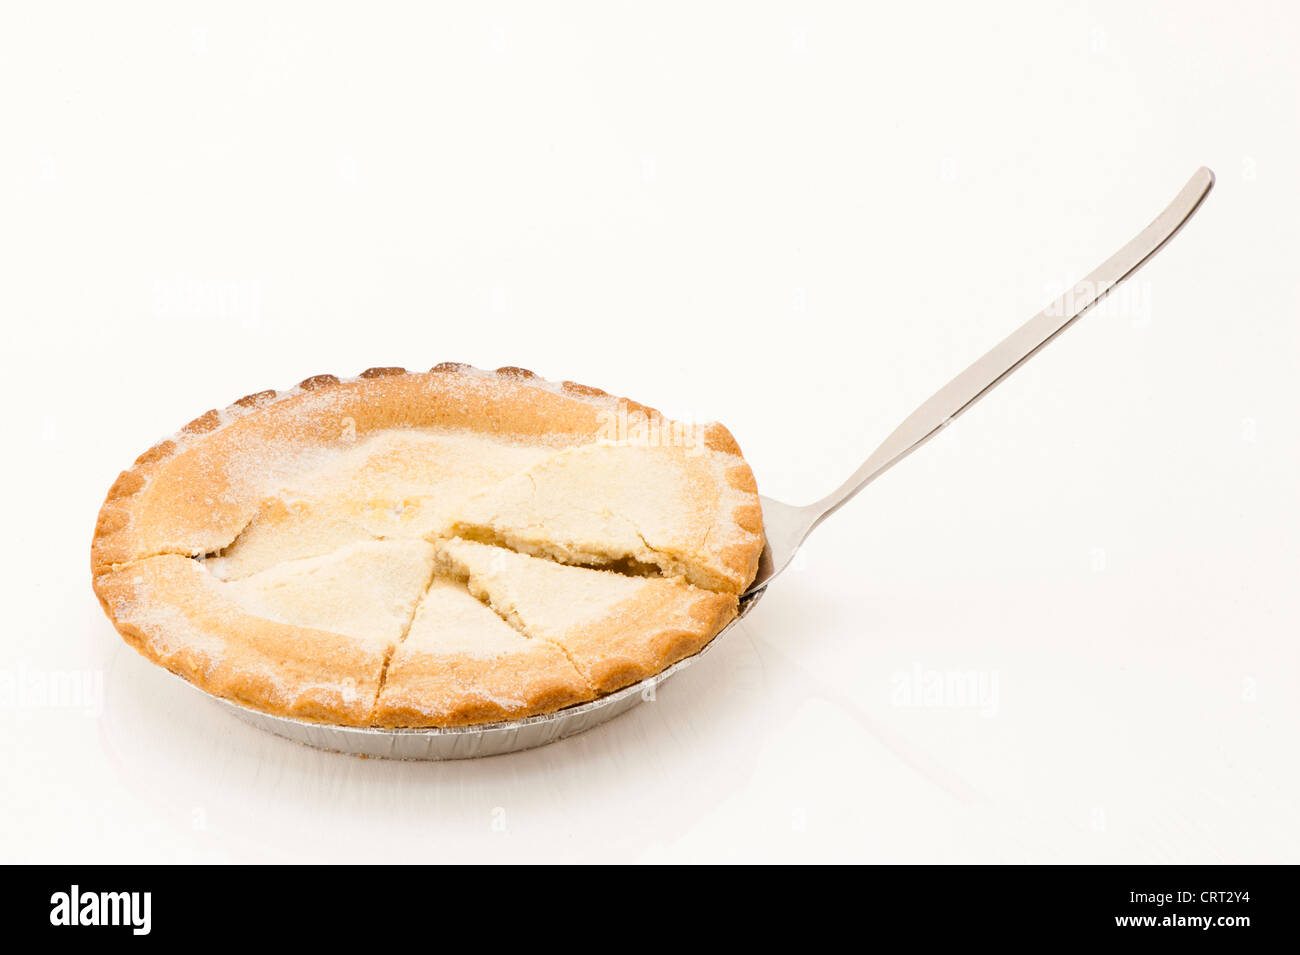 Apple pie with irregular pie chart slices stock photo royalty apple pie with irregular pie chart slices nvjuhfo Images